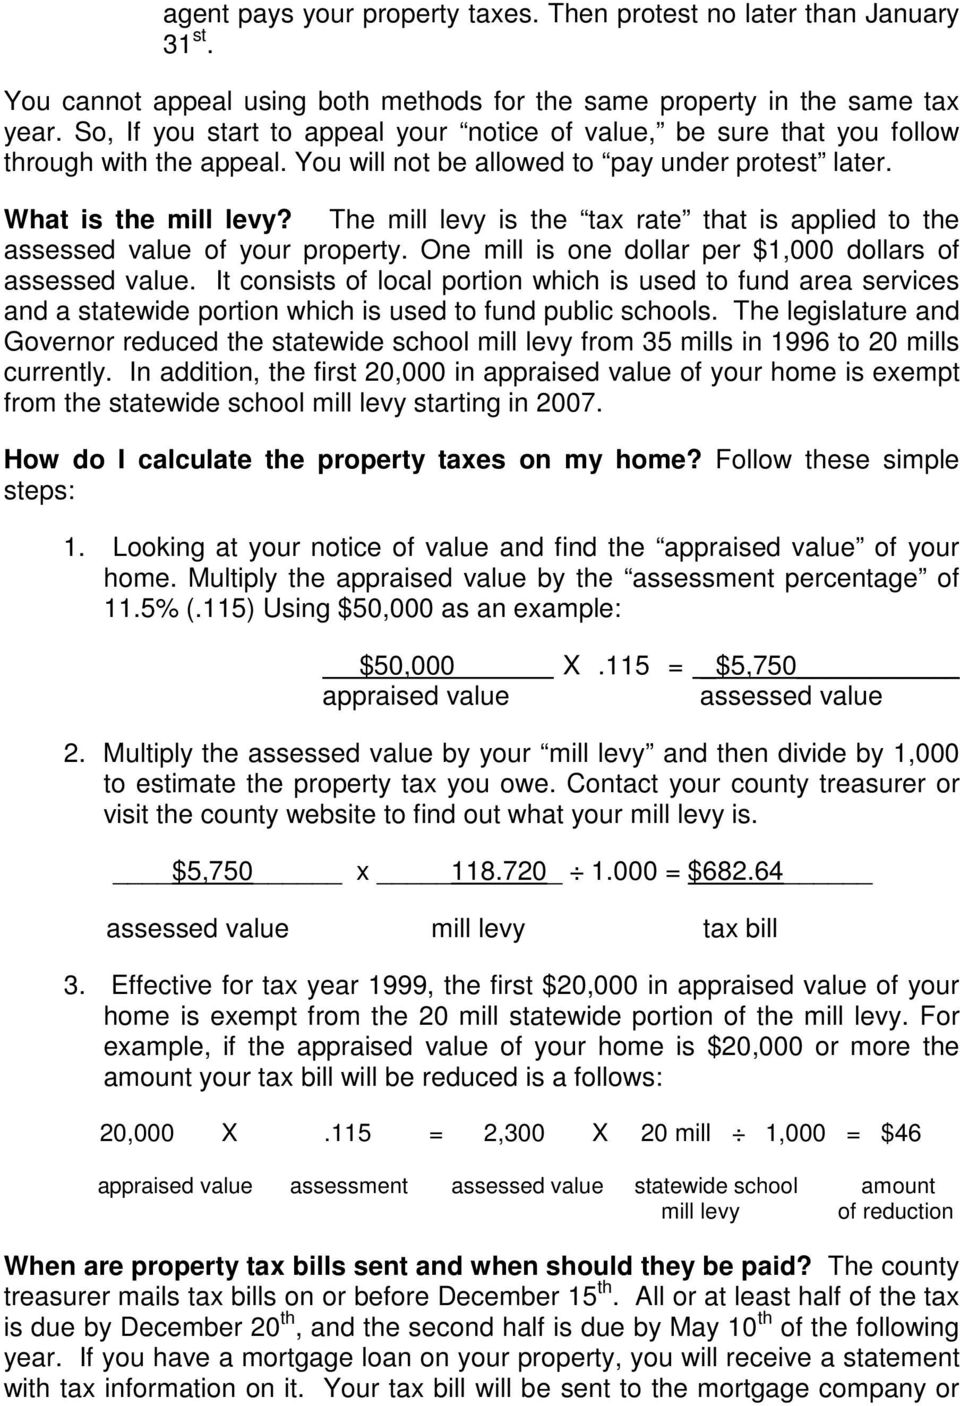 The mill levy is the tax rate that is applied to the assessed value of your property. One mill is one dollar per $1,000 dollars of assessed value.